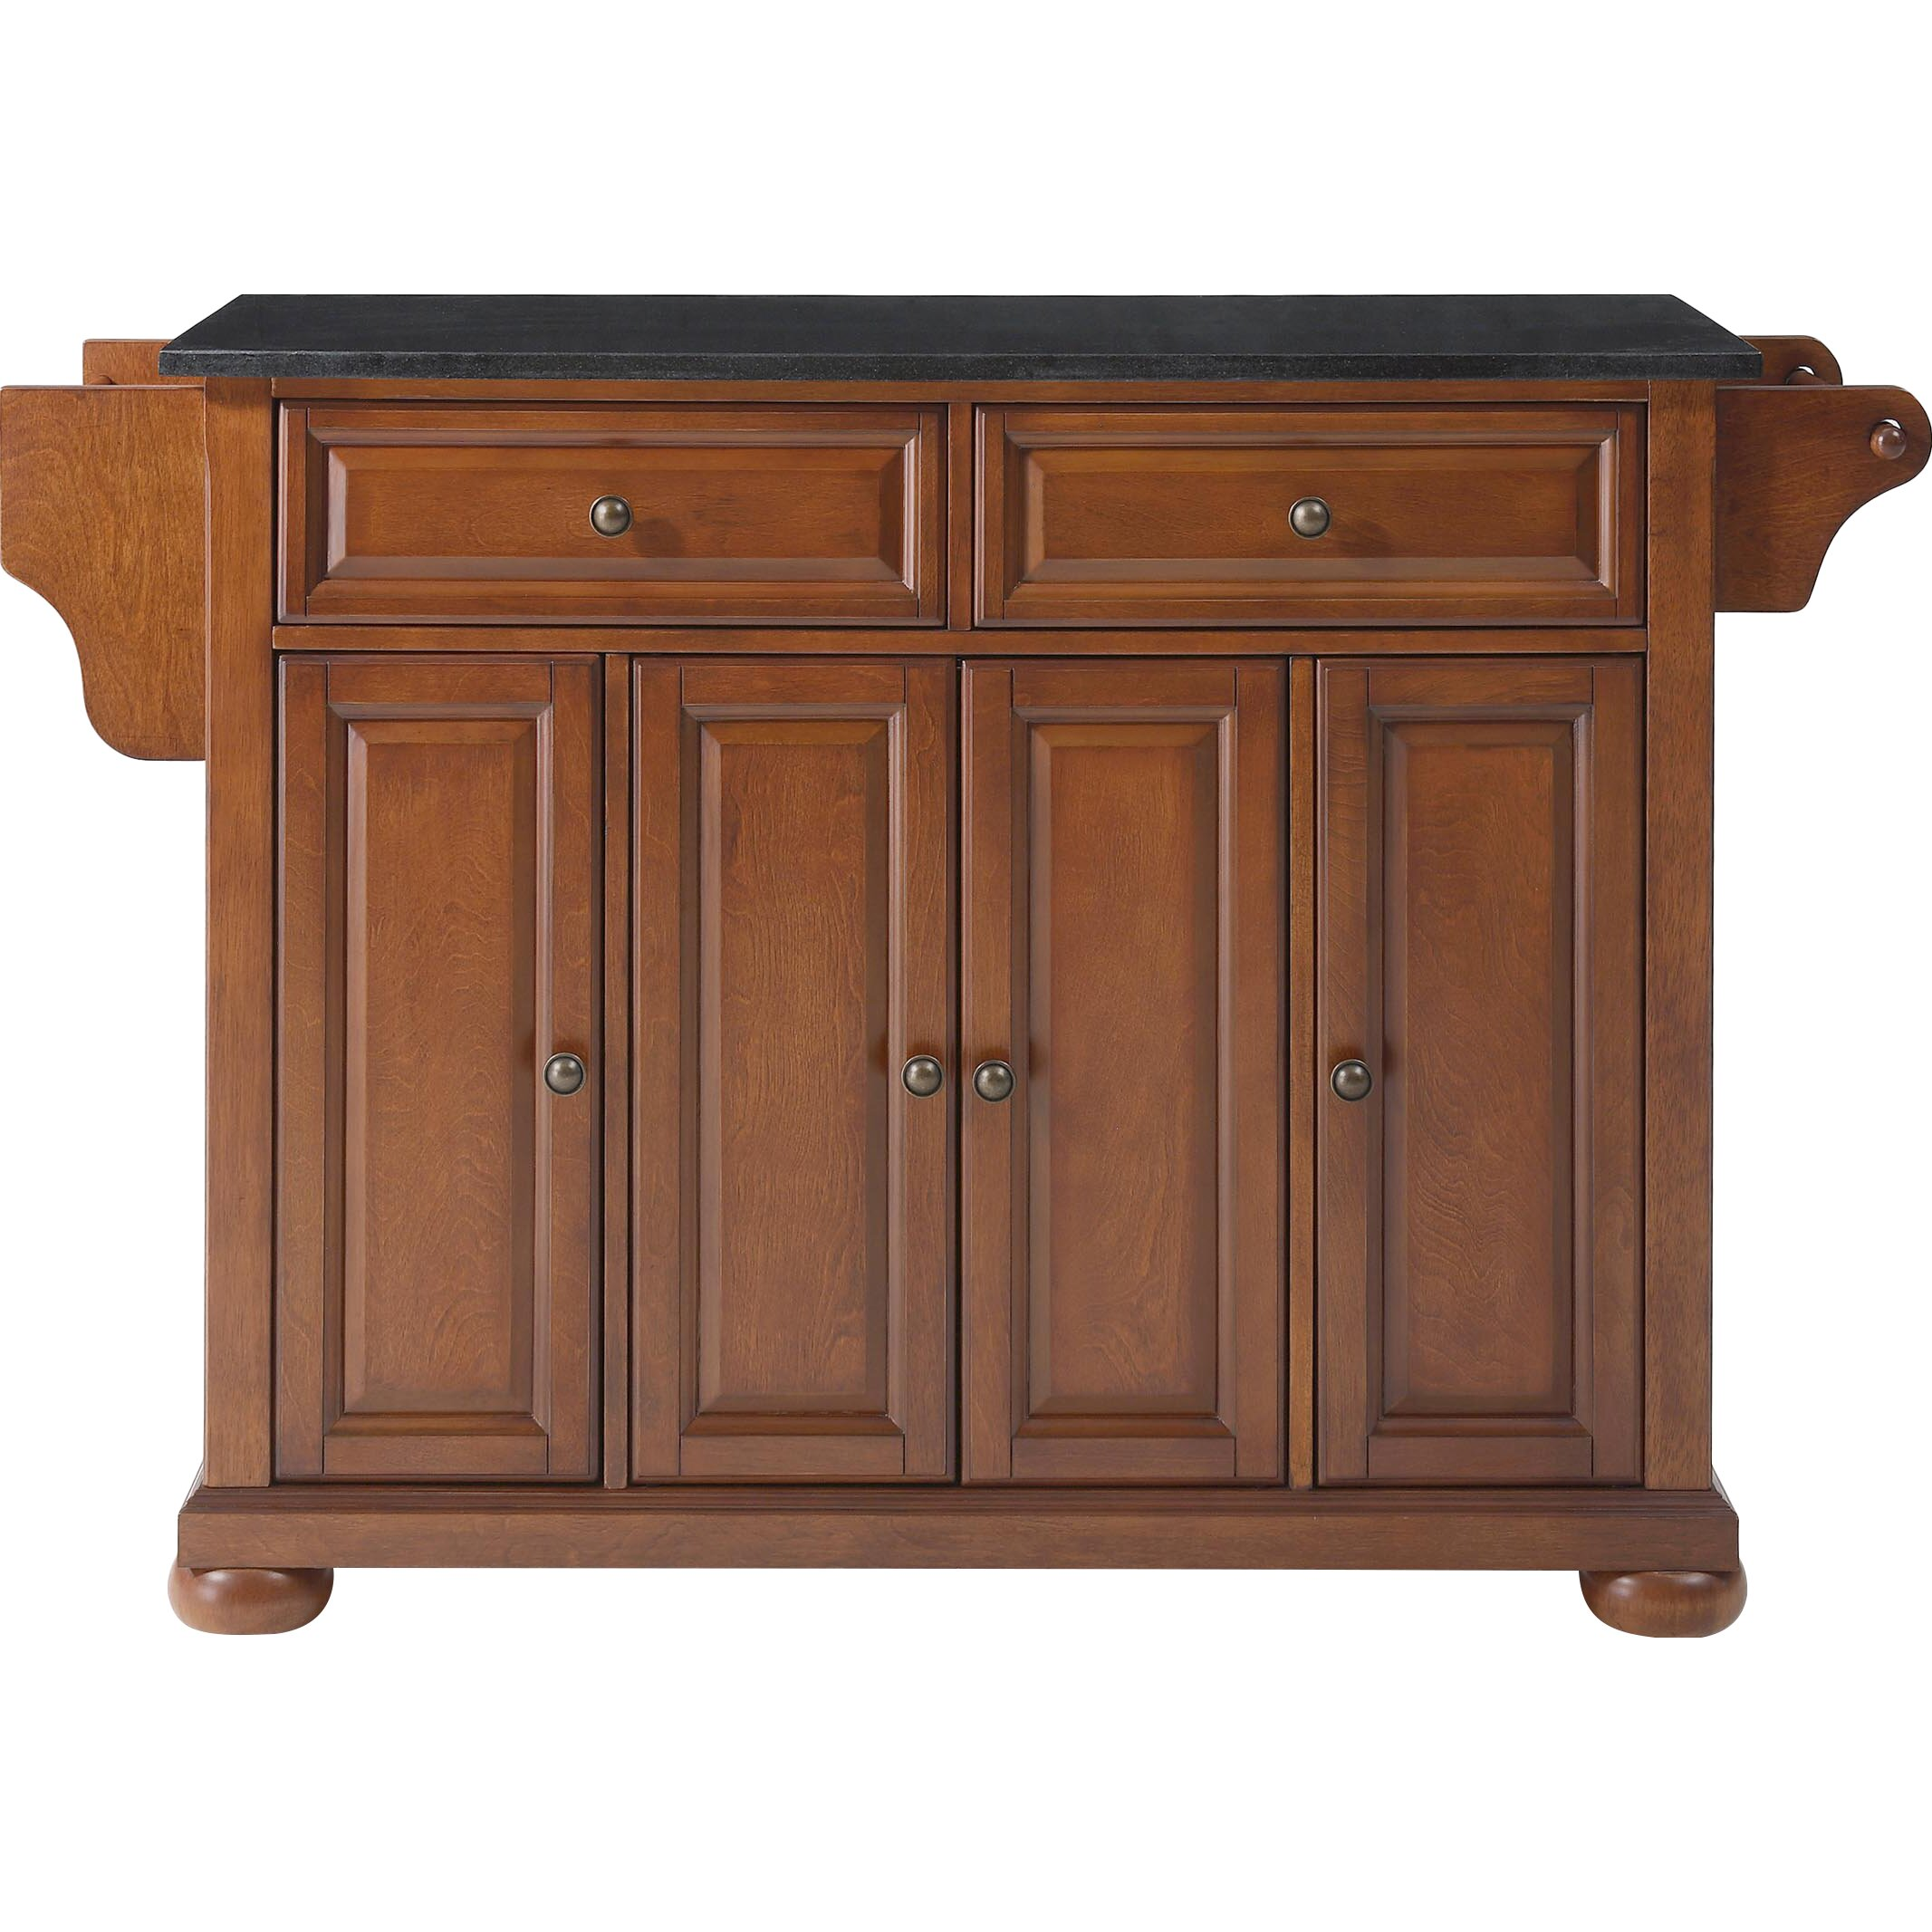 Granite Topped Kitchen Island Darby Home Co Pottstown Kitchen Island With Granite Top Reviews